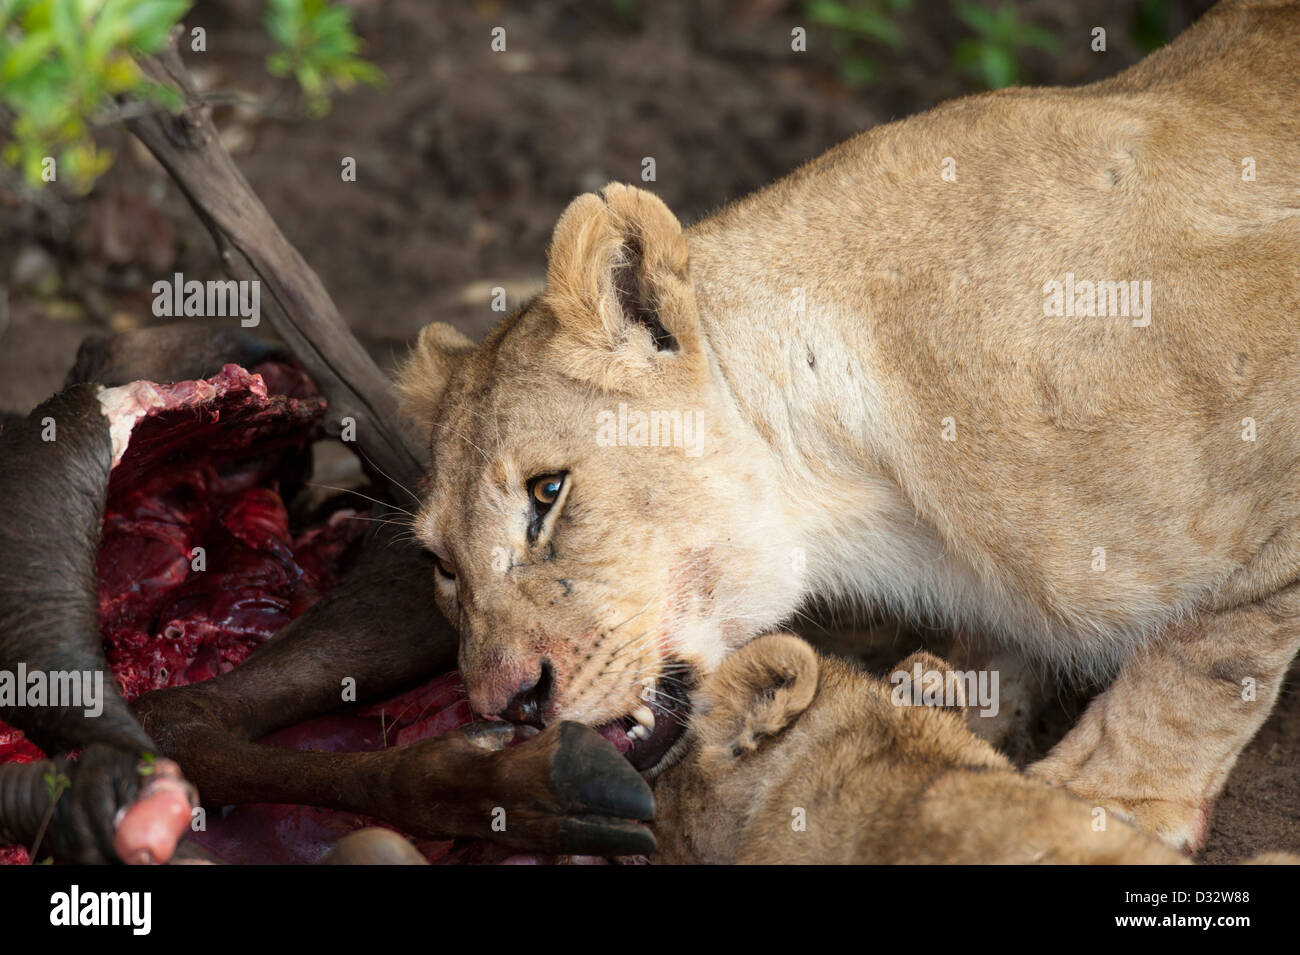 Lions on a kill (Panthero leo), Maasai Mara National Reserve, Kenya Stock Photo